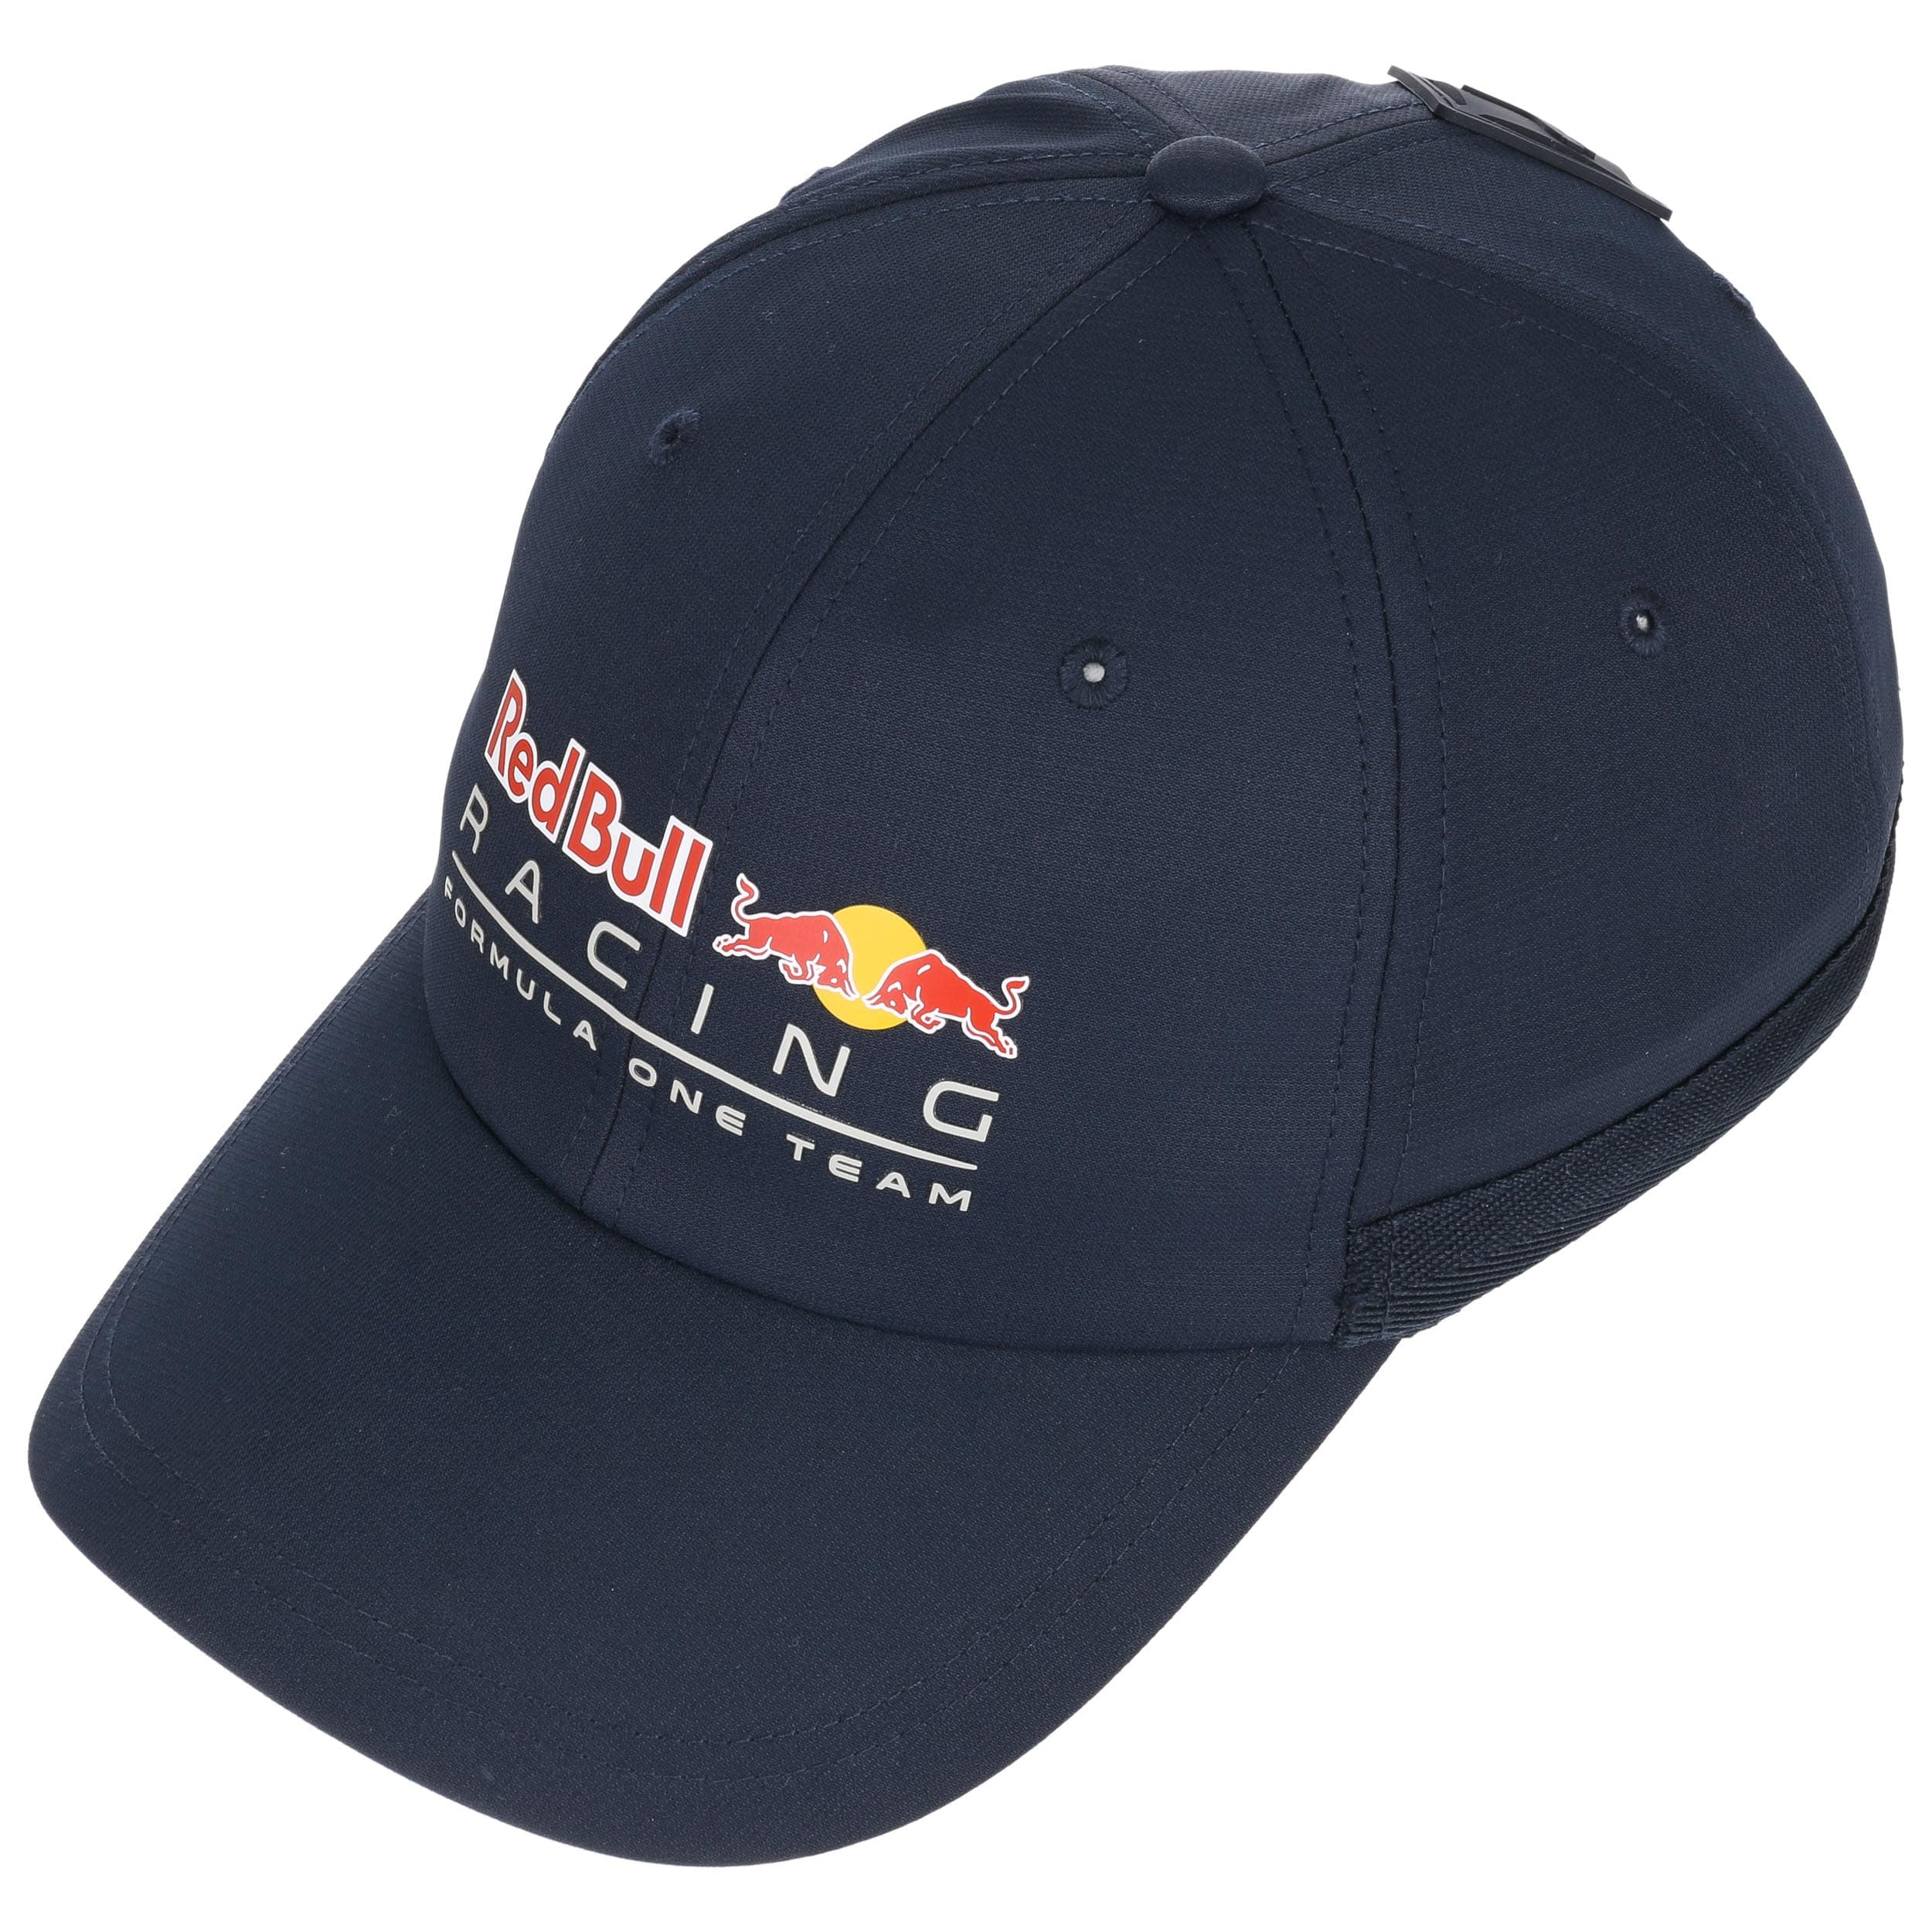 Red Bull Racing Lifestyle Cap by PUMA - navy 1 ... b0dcb6bda76